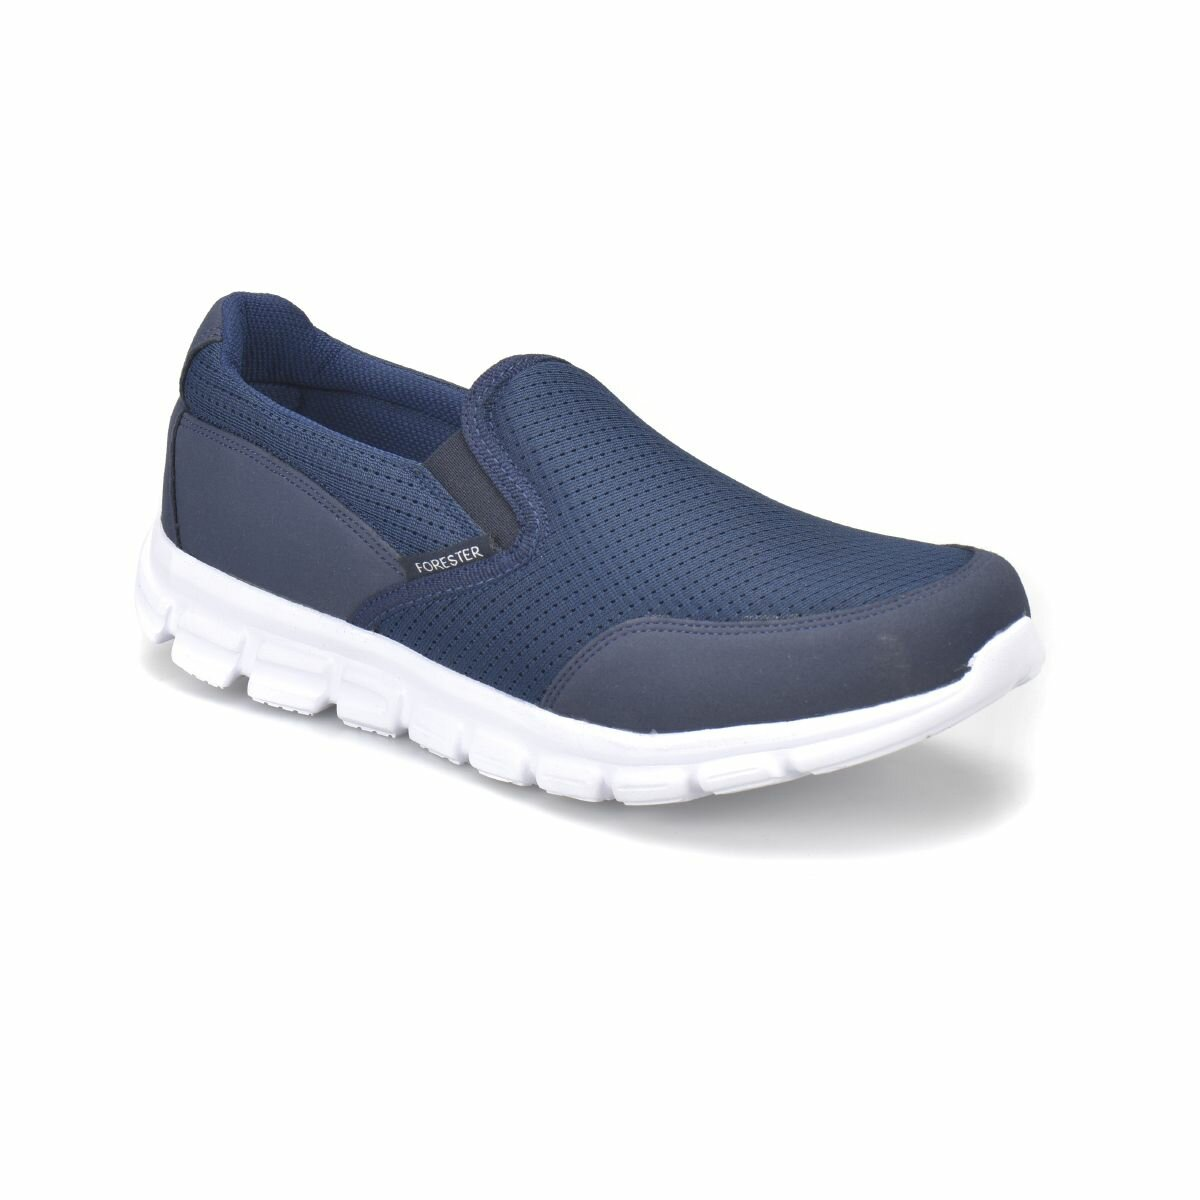 FLO LG-10 Navy Blue Men 'S Shoes Forester